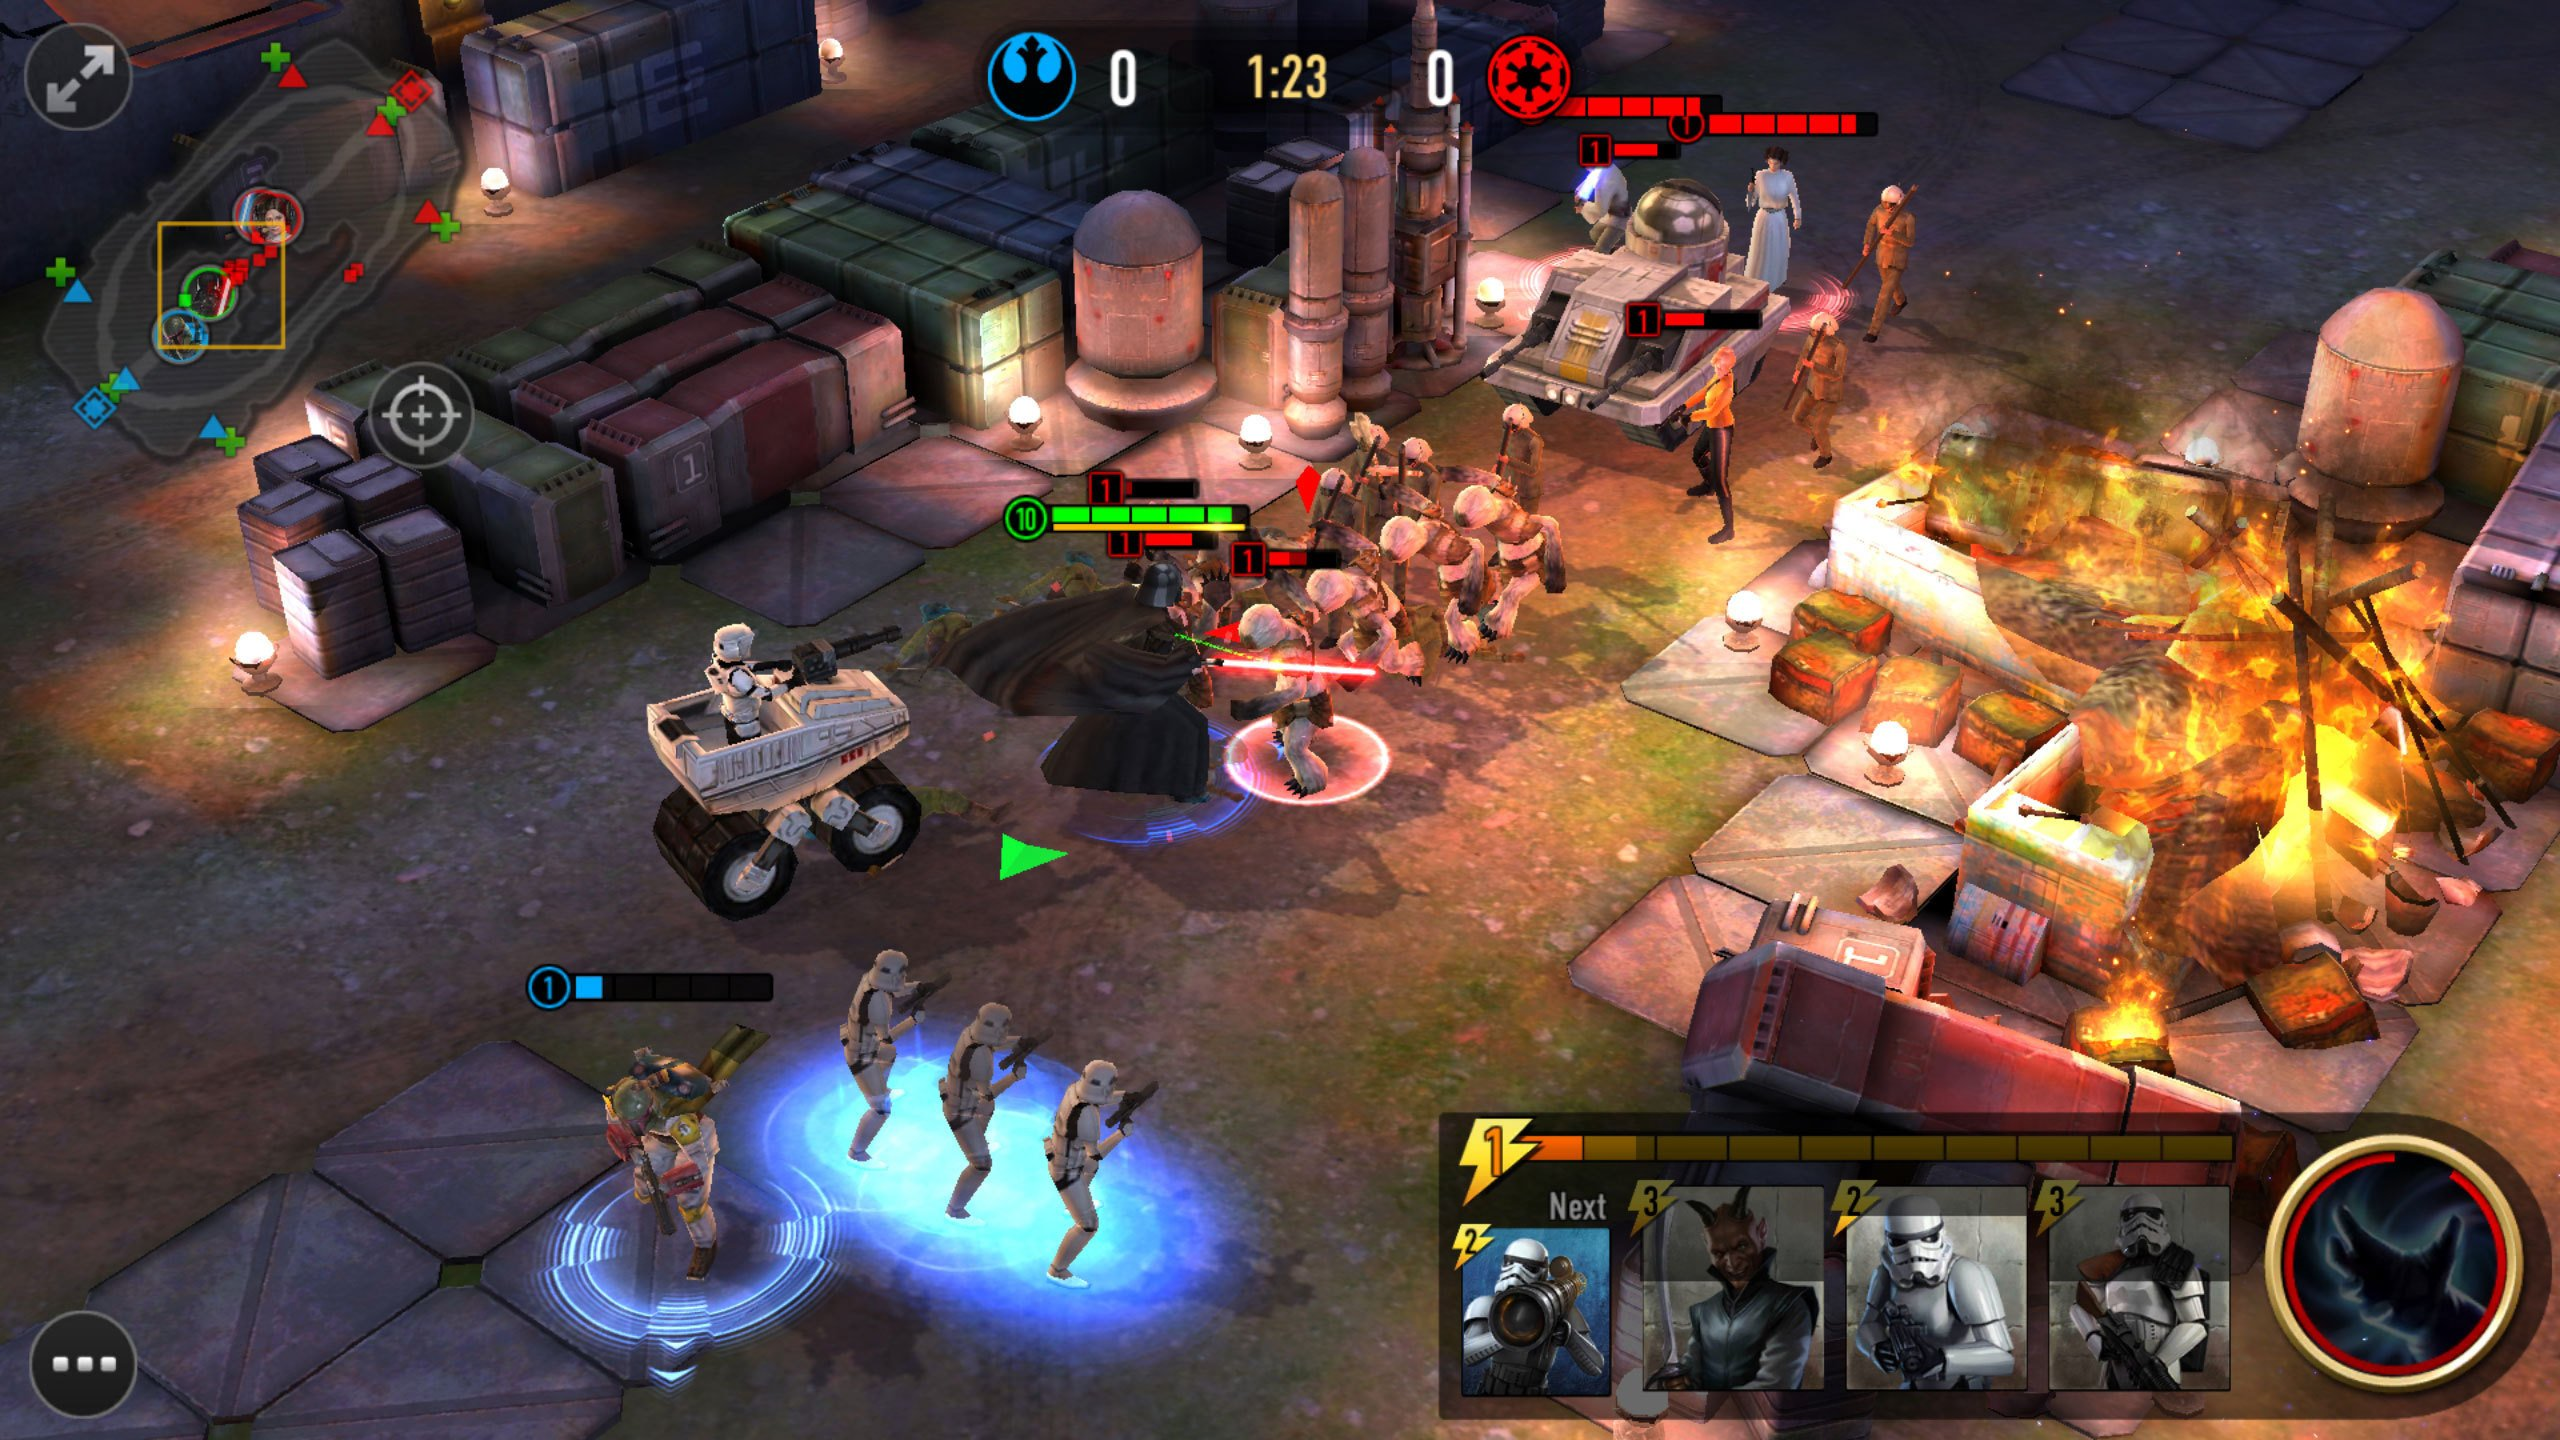 Modojo | Star Wars: Force Arena Update Sees New Characters And Balancing Tweaks